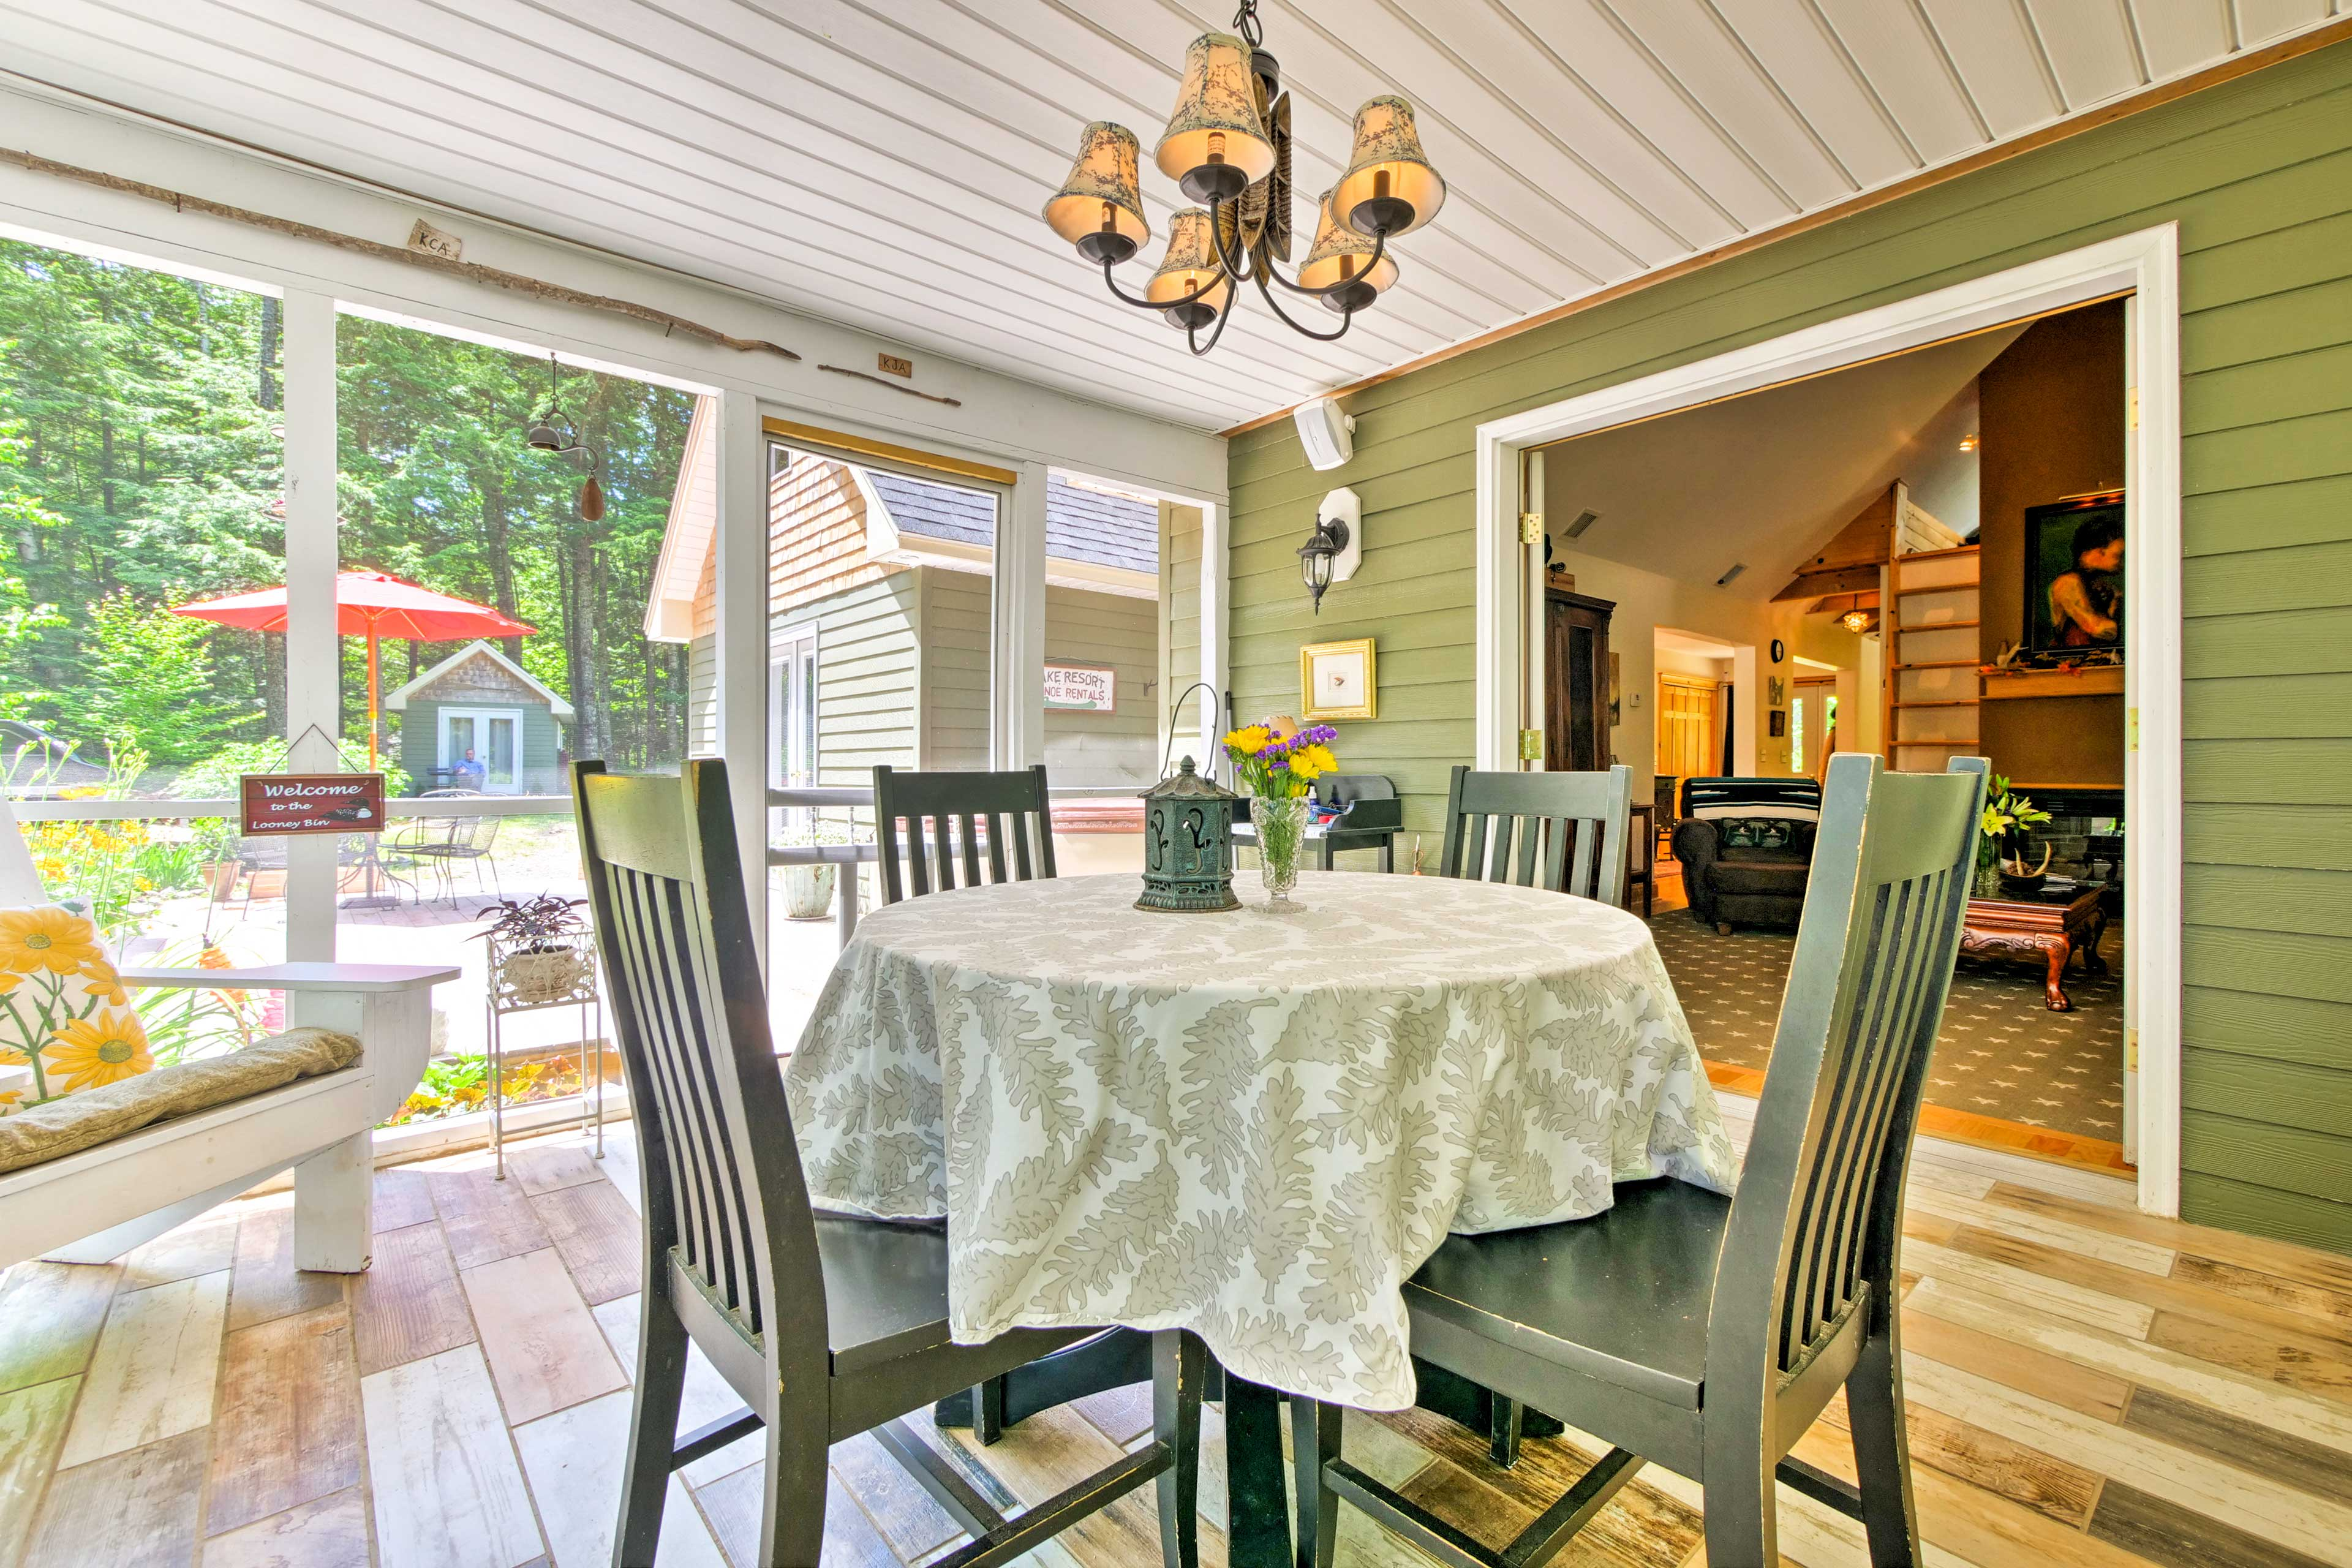 Enjoy the panoramic views of nature from the table in the screened-in porch.